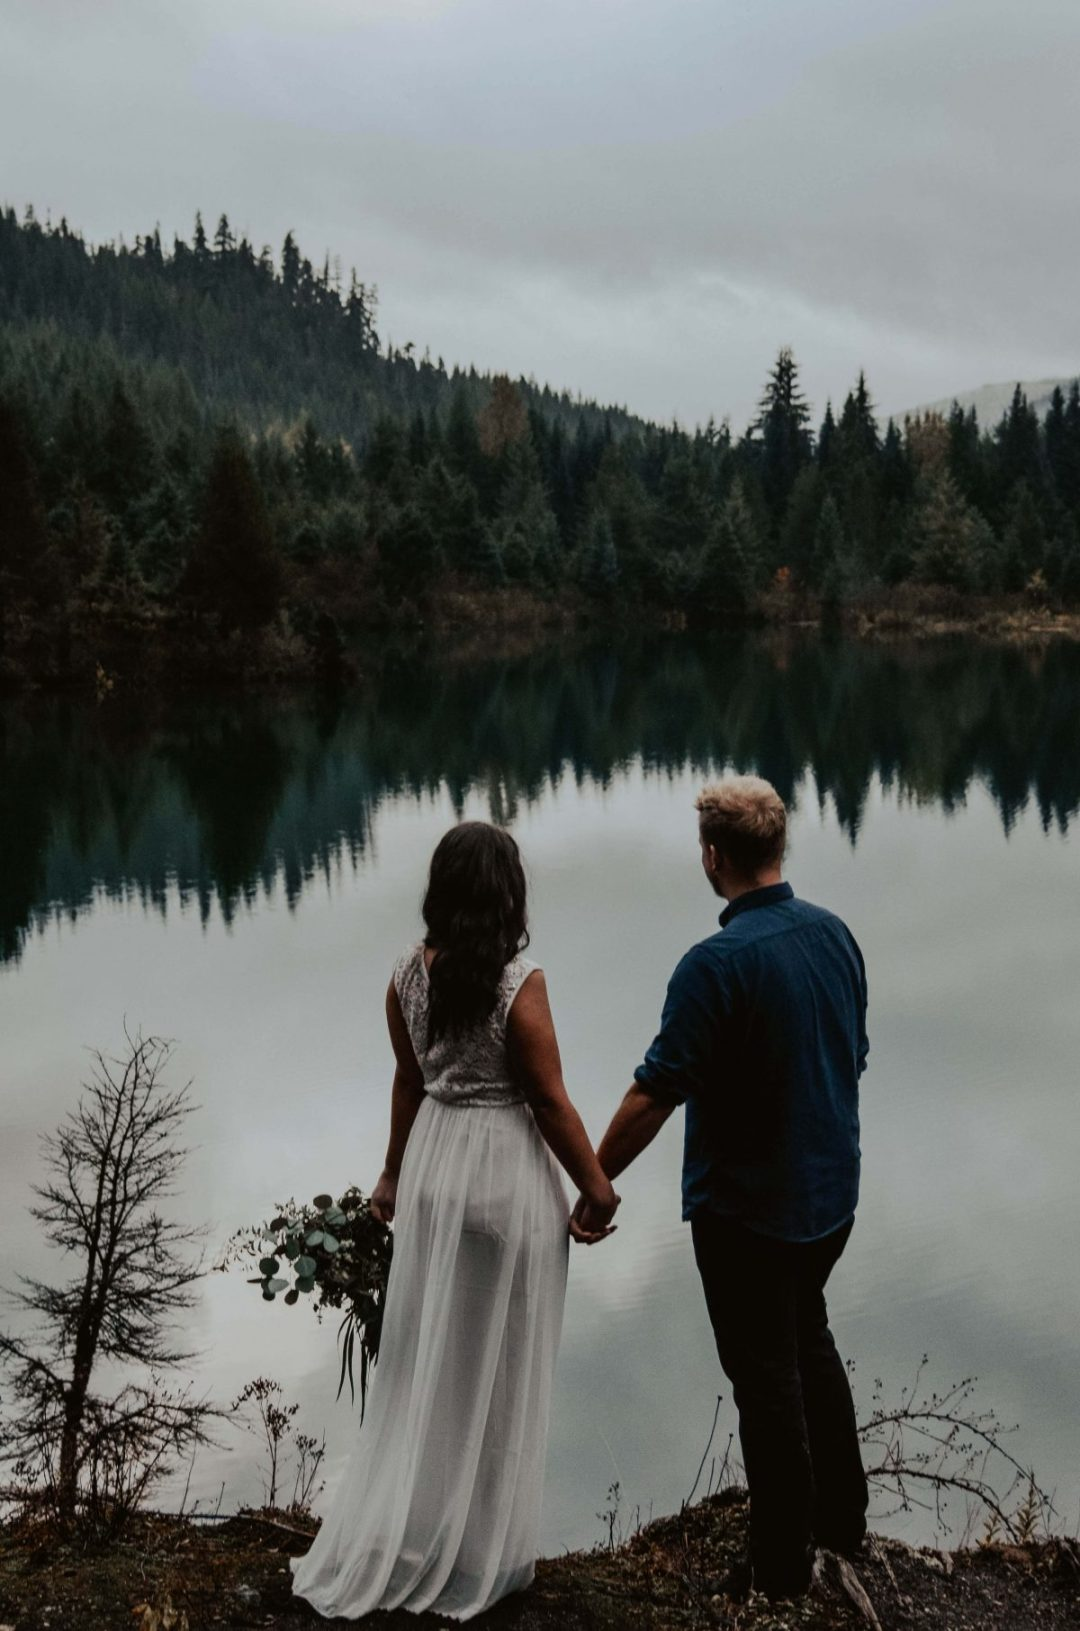 seattle, snoqualmie, elopement, goldcreek, northwest, washington, wedding, photographer, bouquet, moody, trees, lake, mountains, nature, water, white dress, couple, married, fog, reflection, mirror, pnw